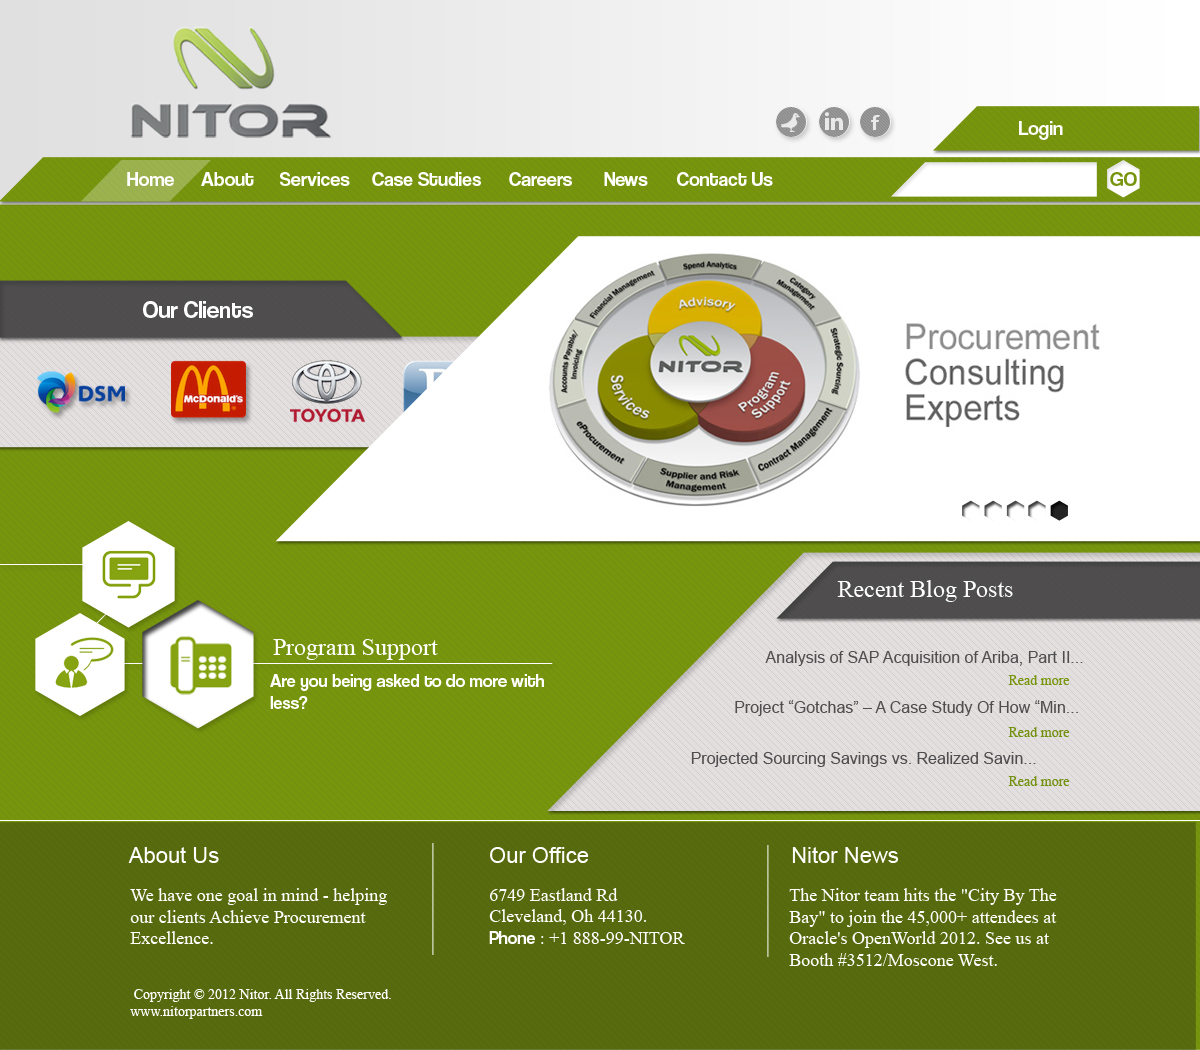 Web page design contests nitor partners web page design for Web page architecture